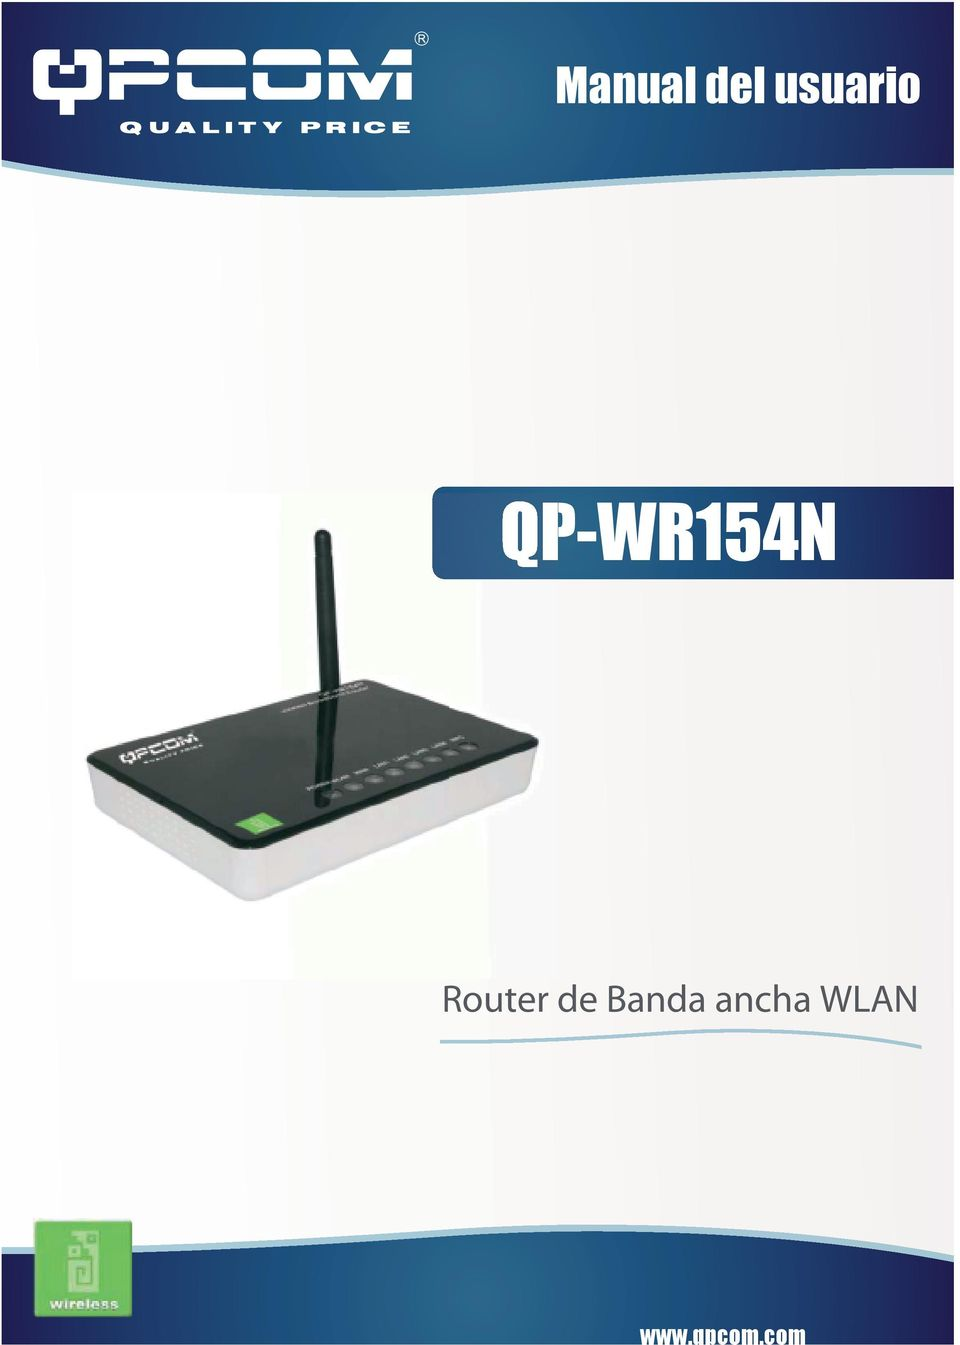 Manual del usuario QP-WR154N. Router de Banda ancha WLAN. - PDF